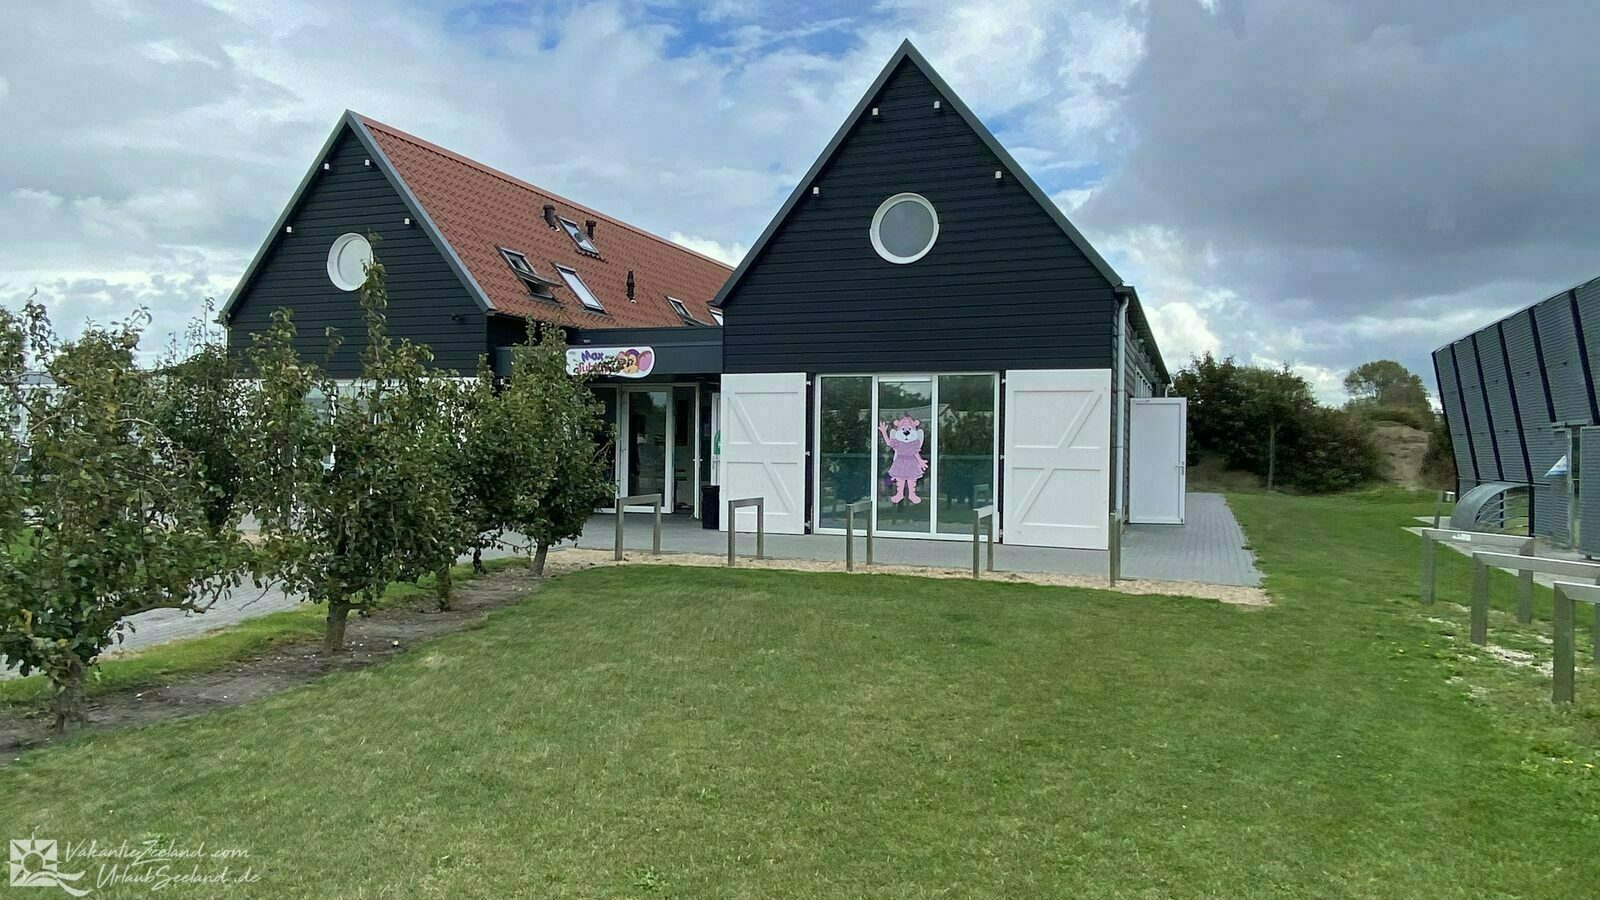 VZ931 Holiday chalet in Oostkapelle